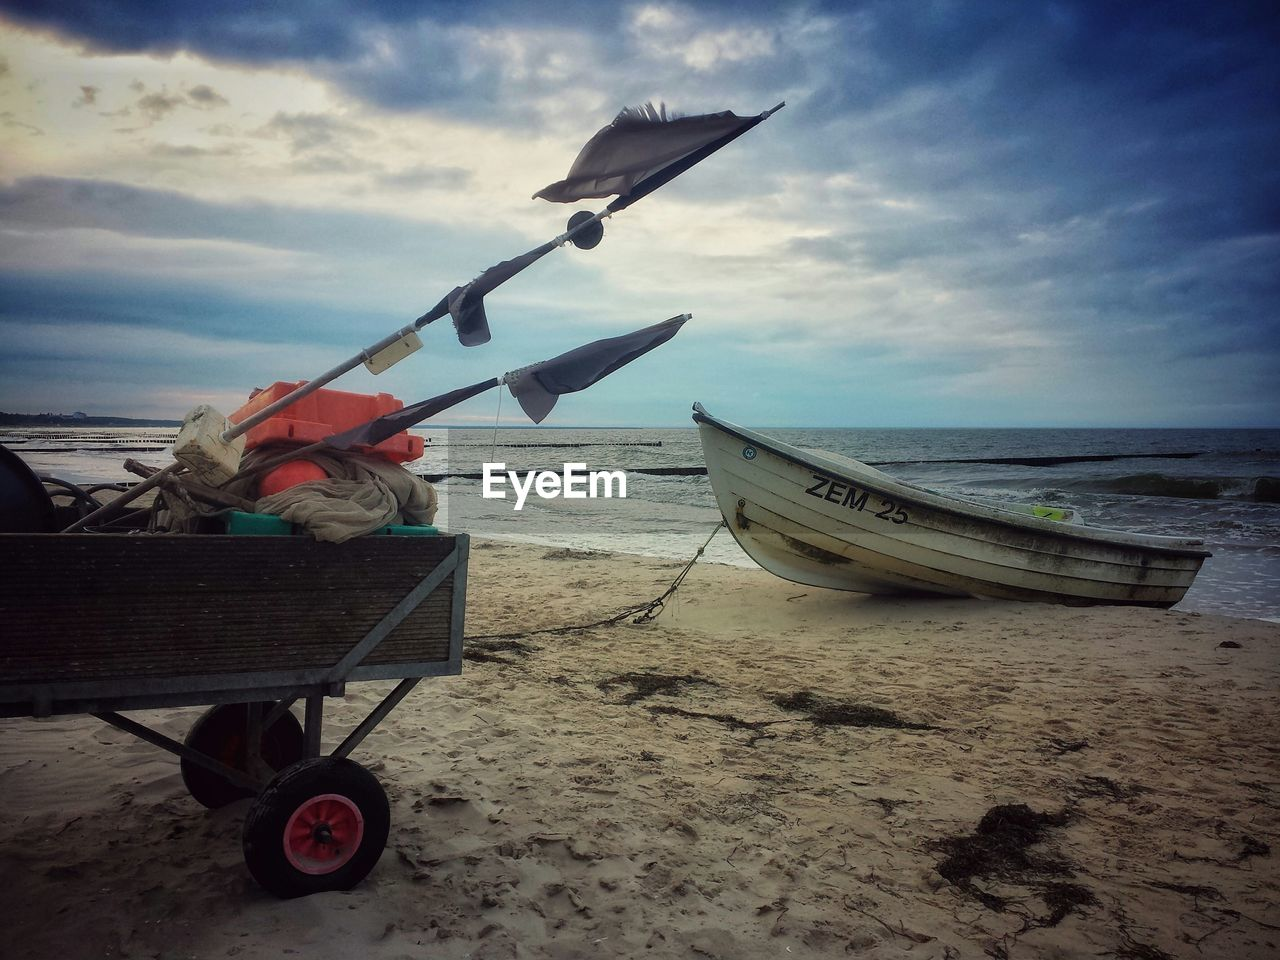 sea, beach, sand, sky, water, horizon over water, shore, transportation, nautical vessel, mode of transport, cloud - sky, nature, men, real people, one person, outdoors, day, scenics, beauty in nature, moored, full length, flying, one man only, people